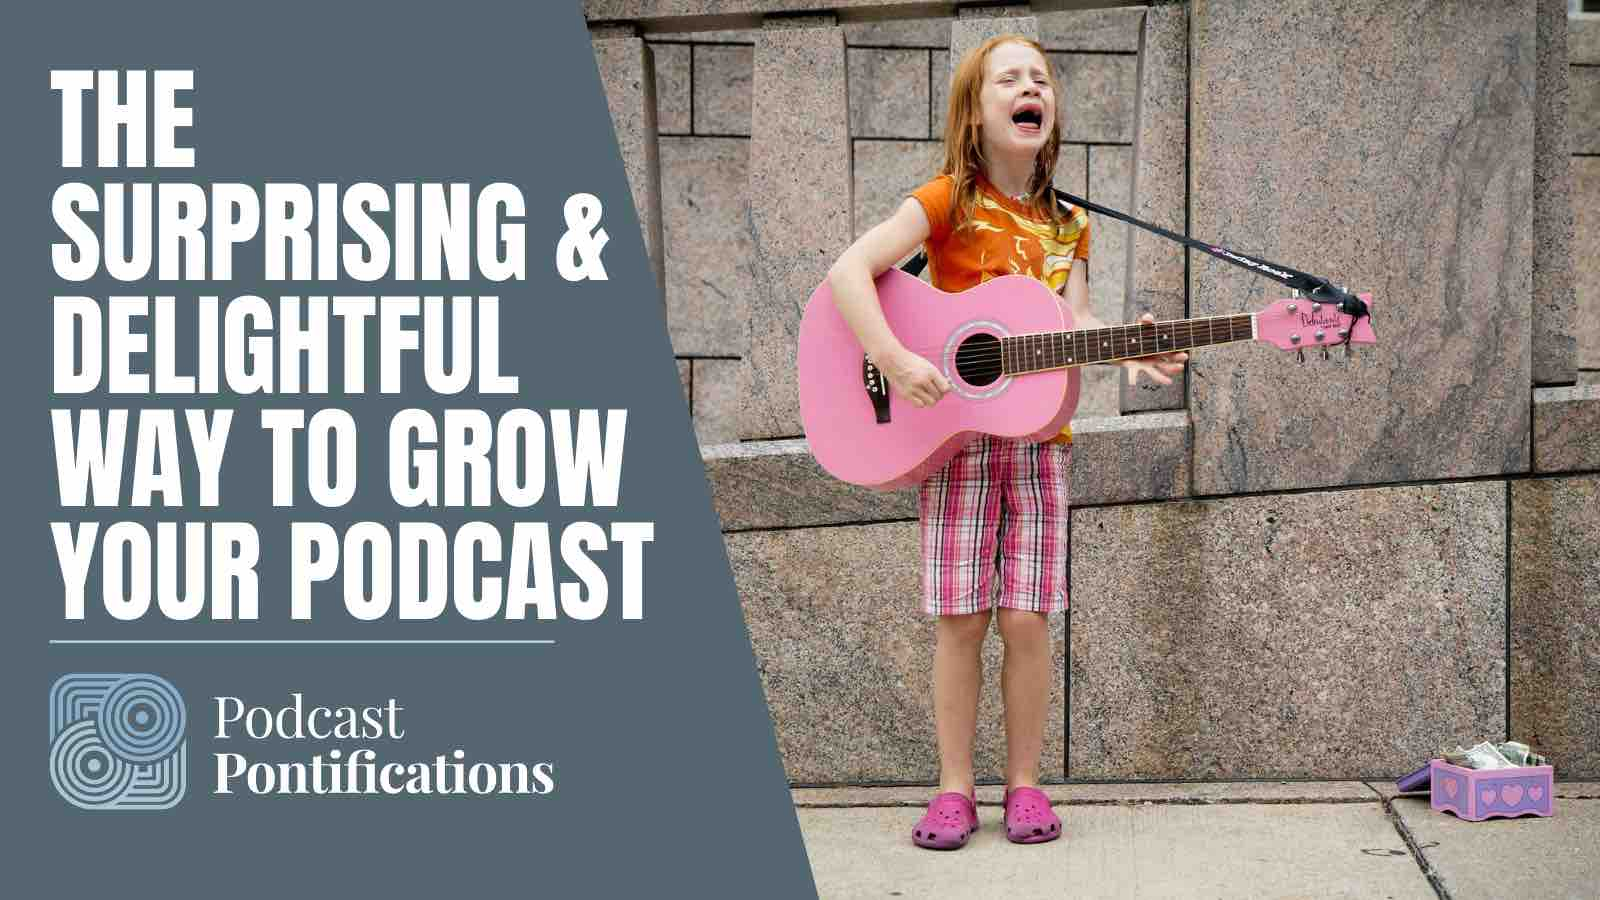 The Surprising & Delightful Way To Grow Your Podcast